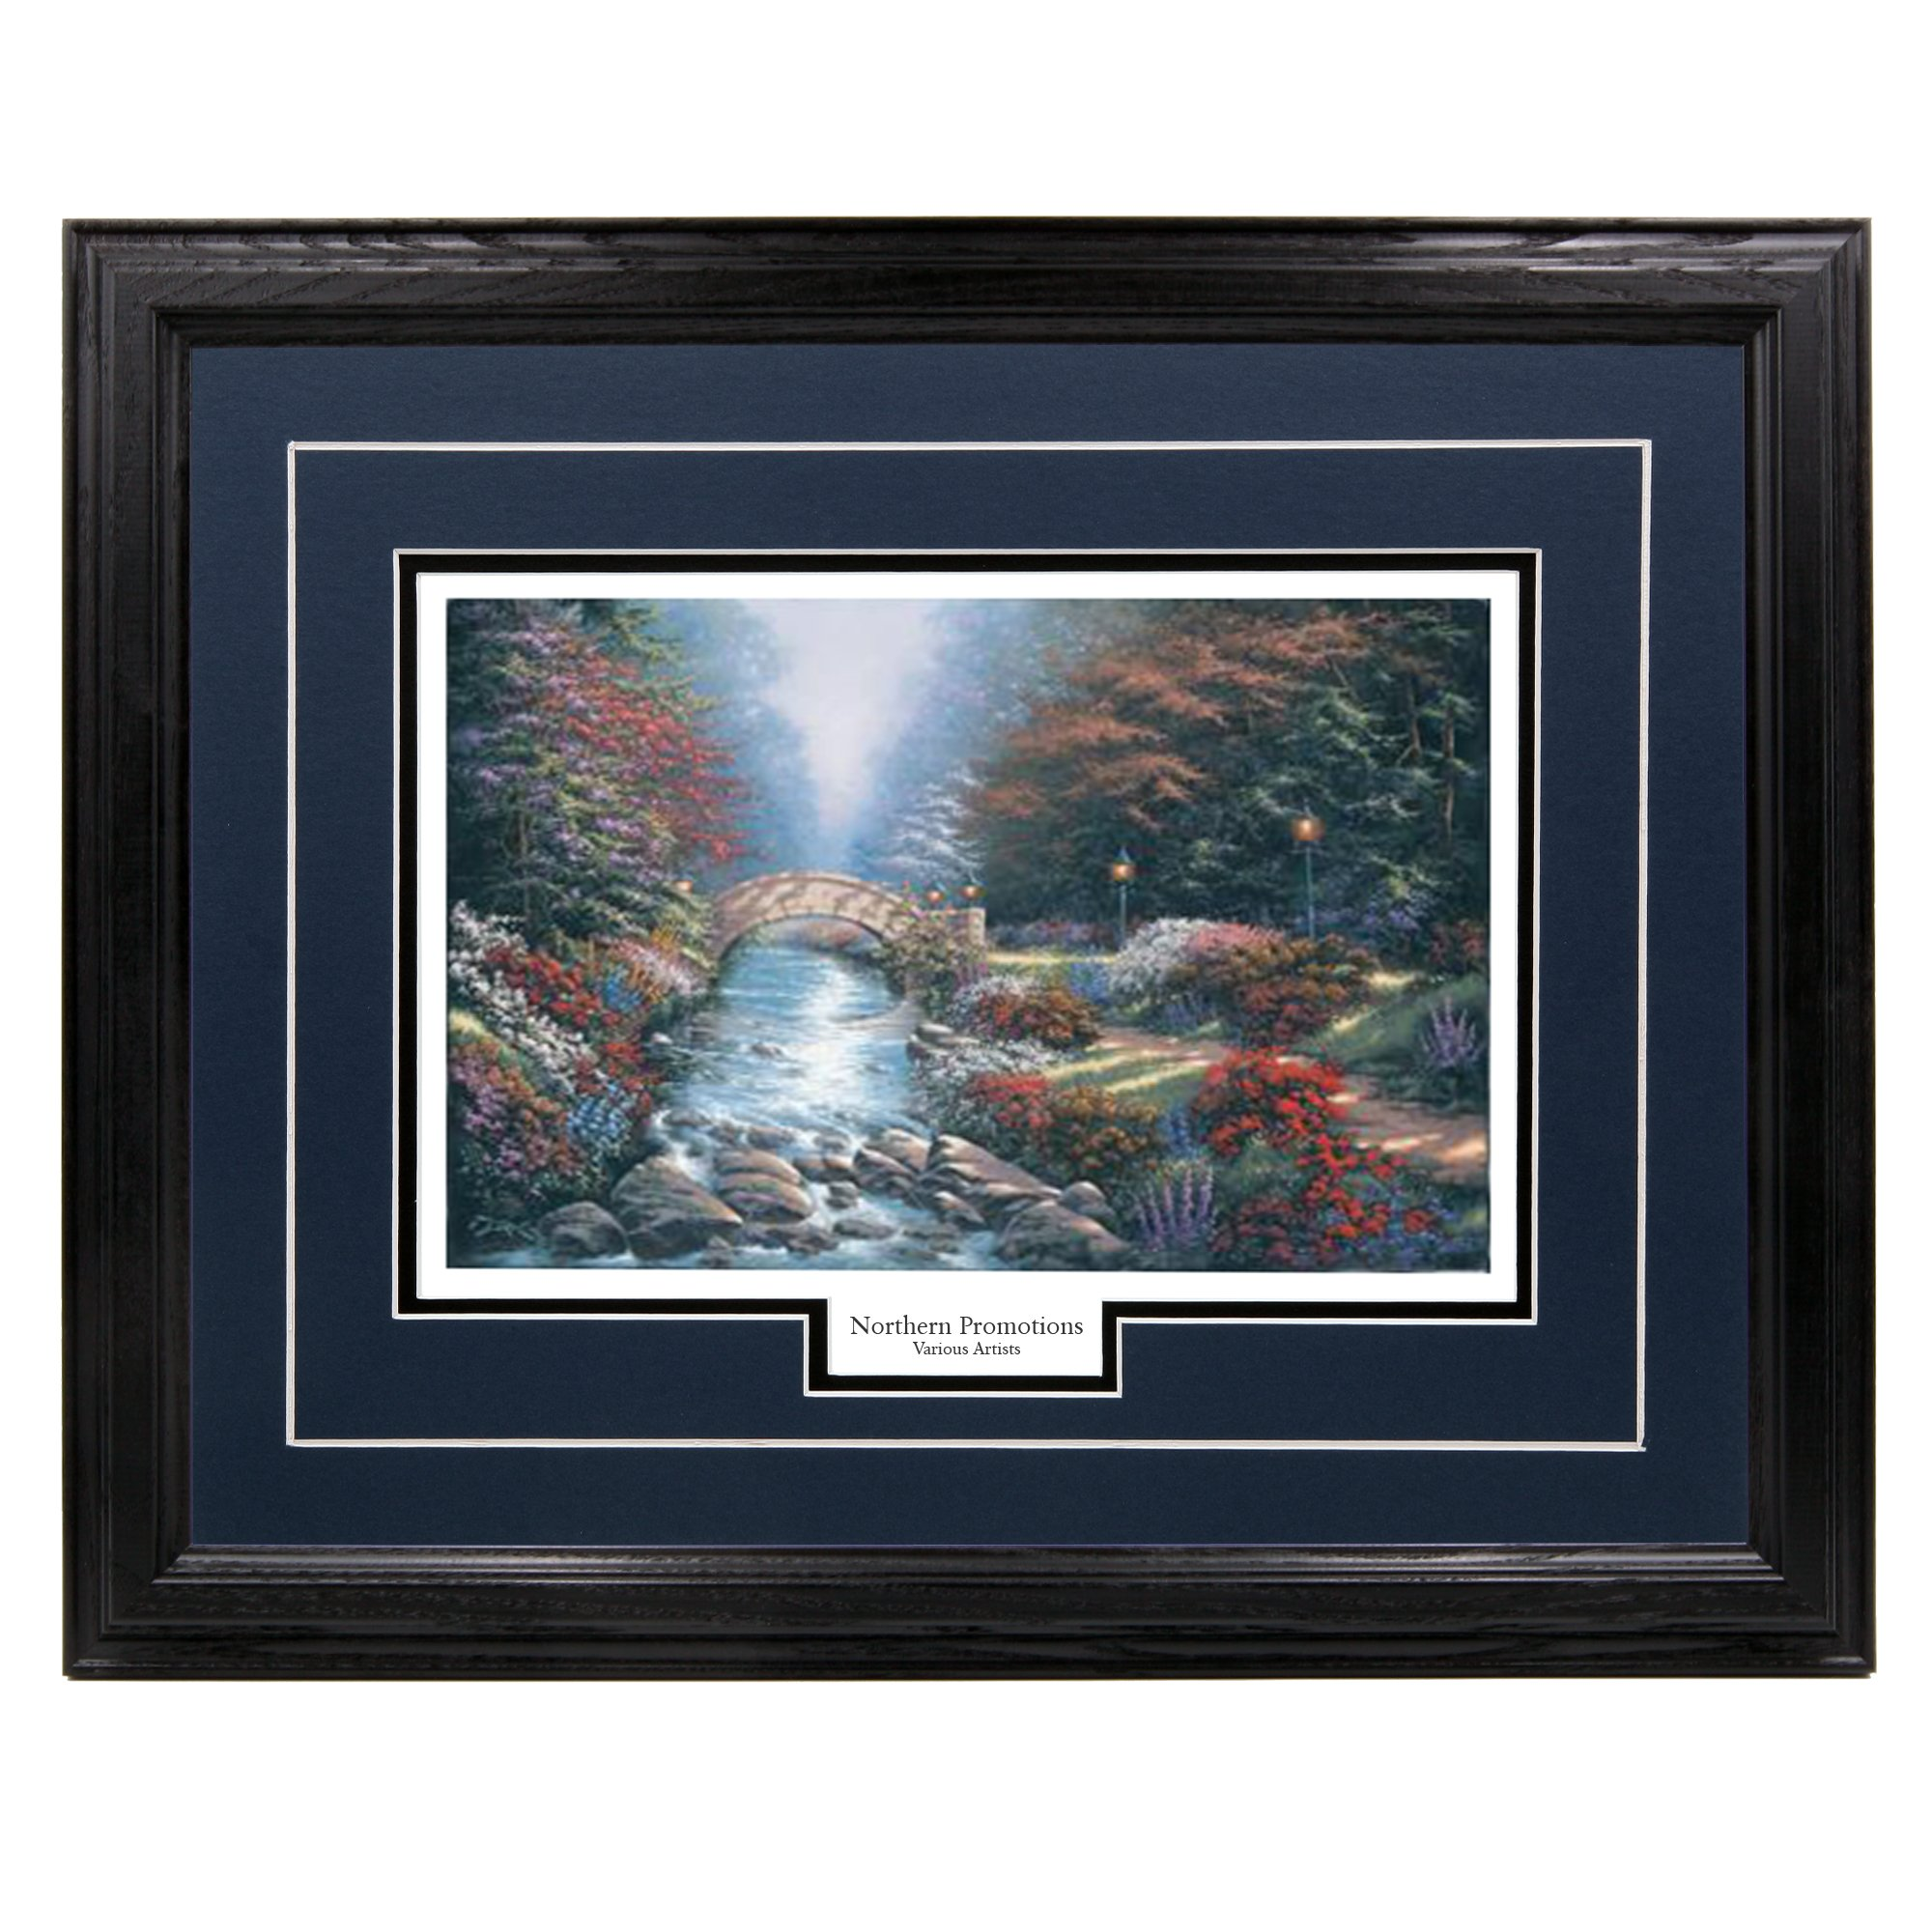 ''Pathway of Dreams'' - Derk Hansen, Rustic Arched Bridge, Stream, and Garden Park Wall Art Print for Home / Office / Hotel / Gift, 17 x 21 in., Blue Mat / Black Frame – More Frames Available